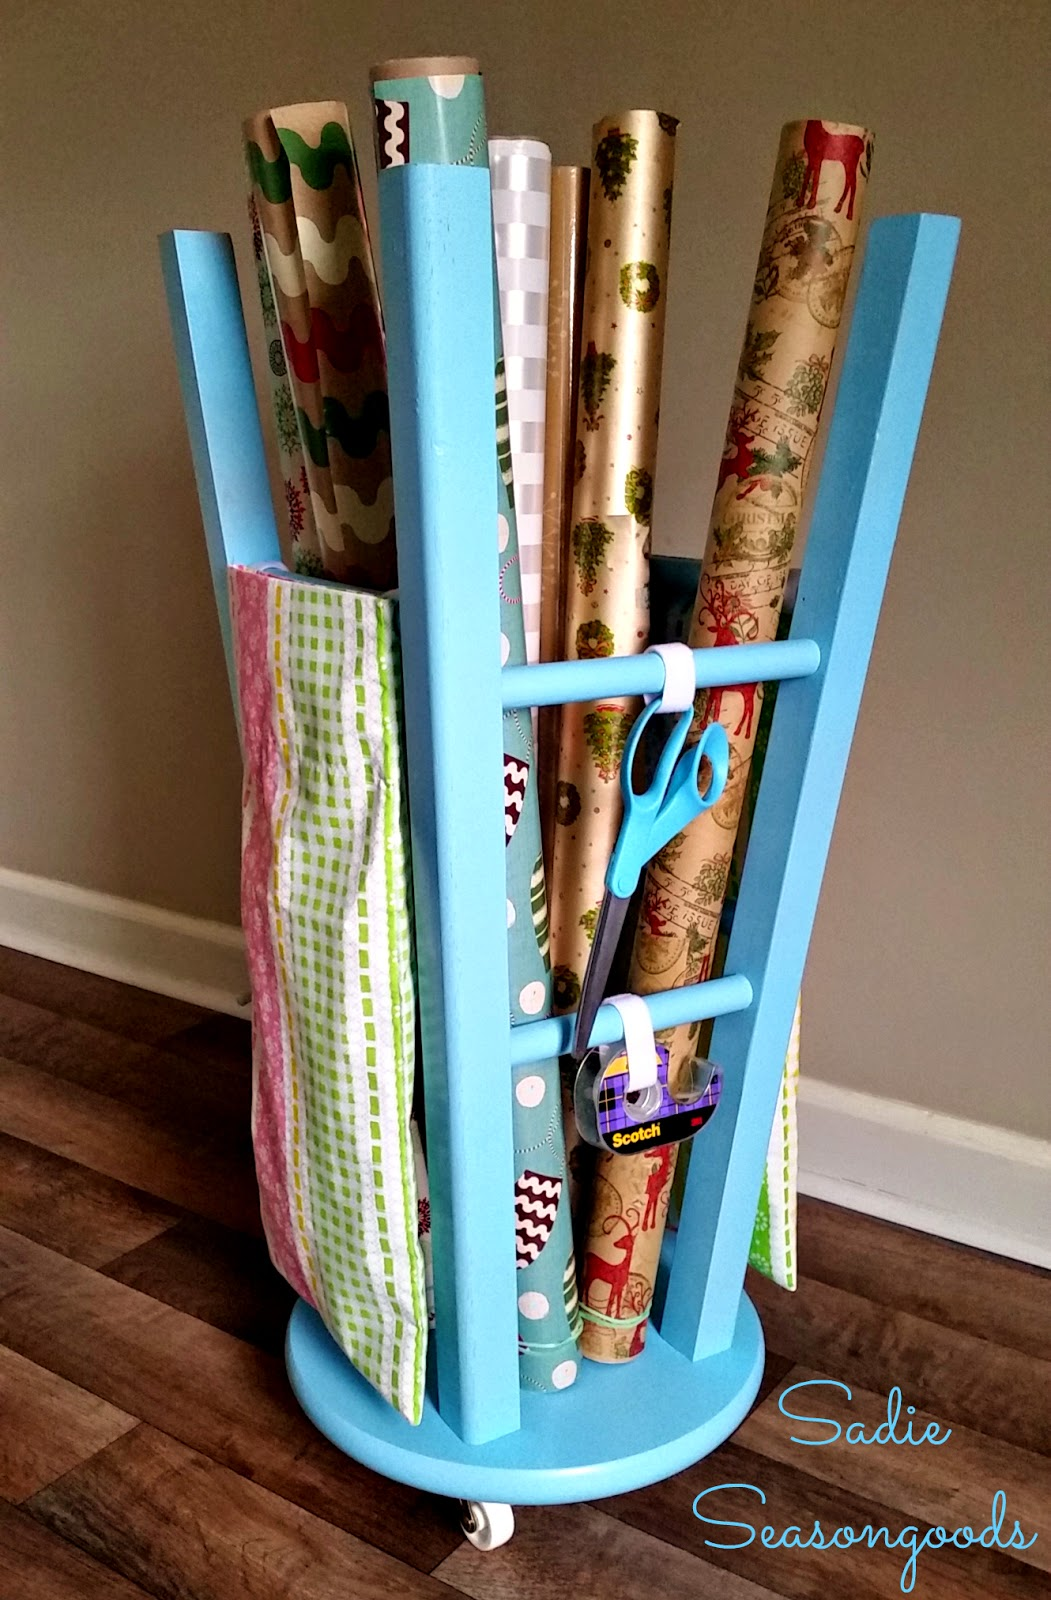 DIY Bar Stool Gift Wrap Center, shared bySadie Seasongoods